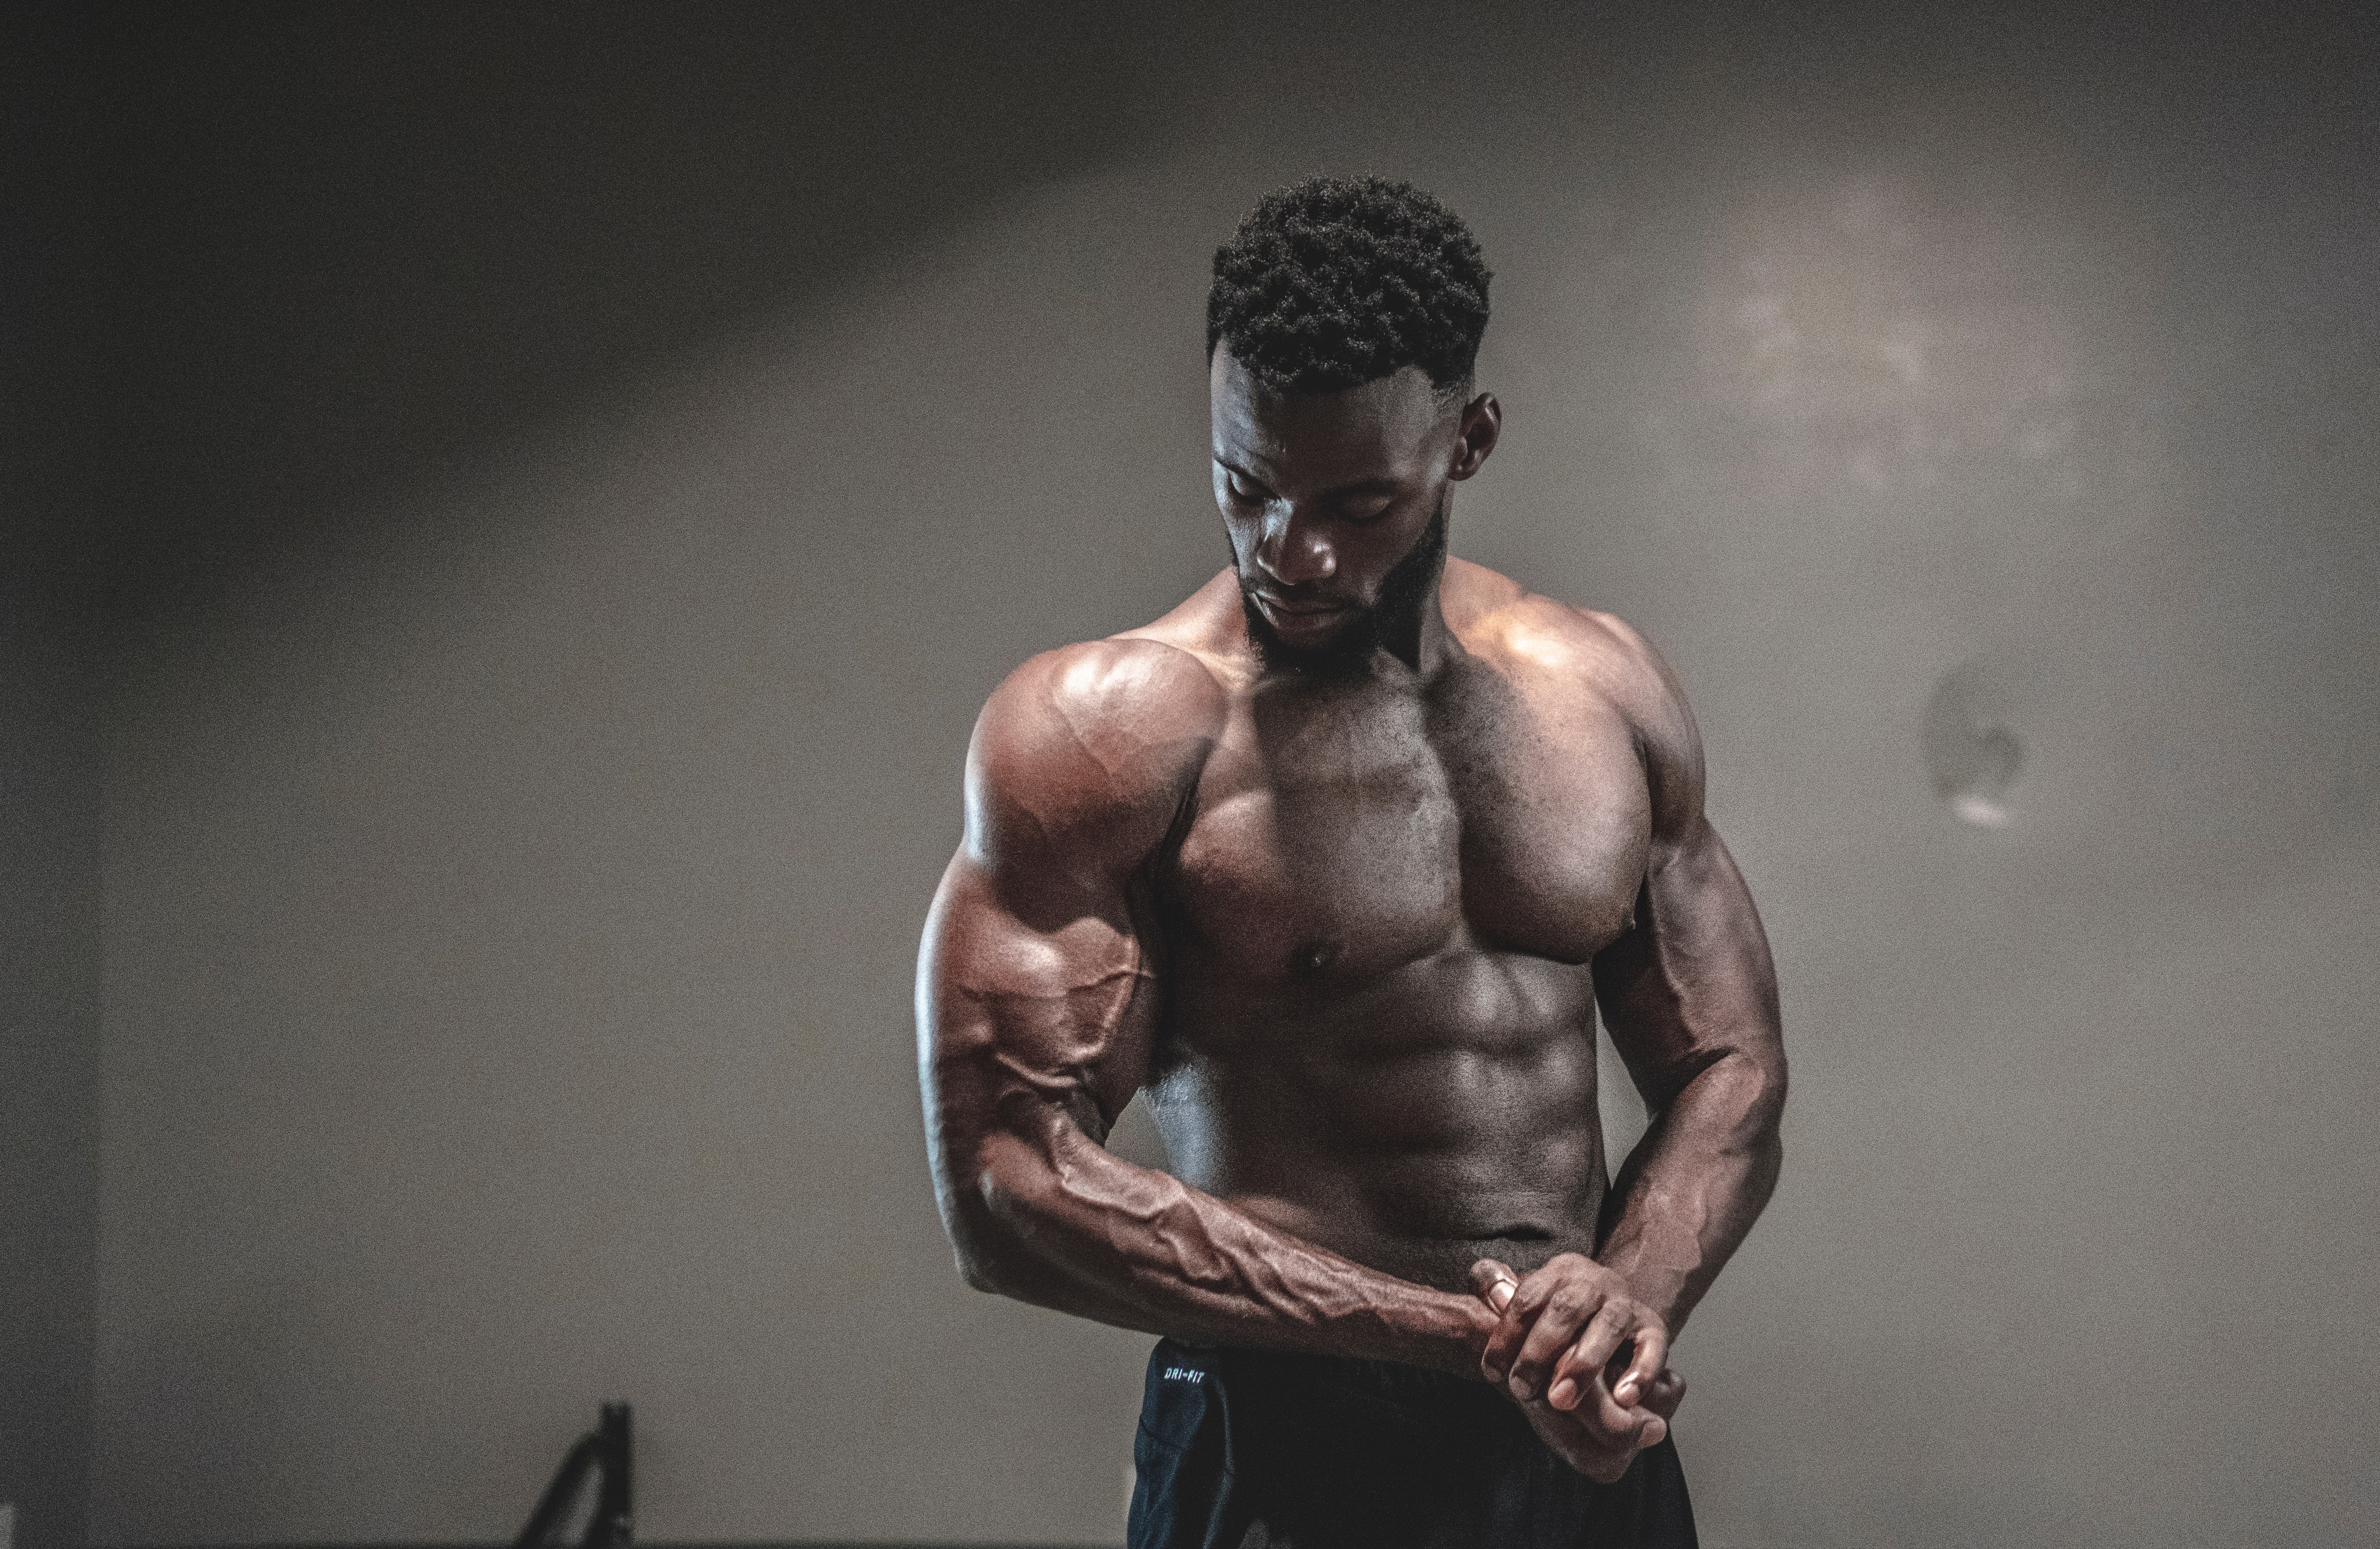 photo-of-man-with-muscular-body-1547248